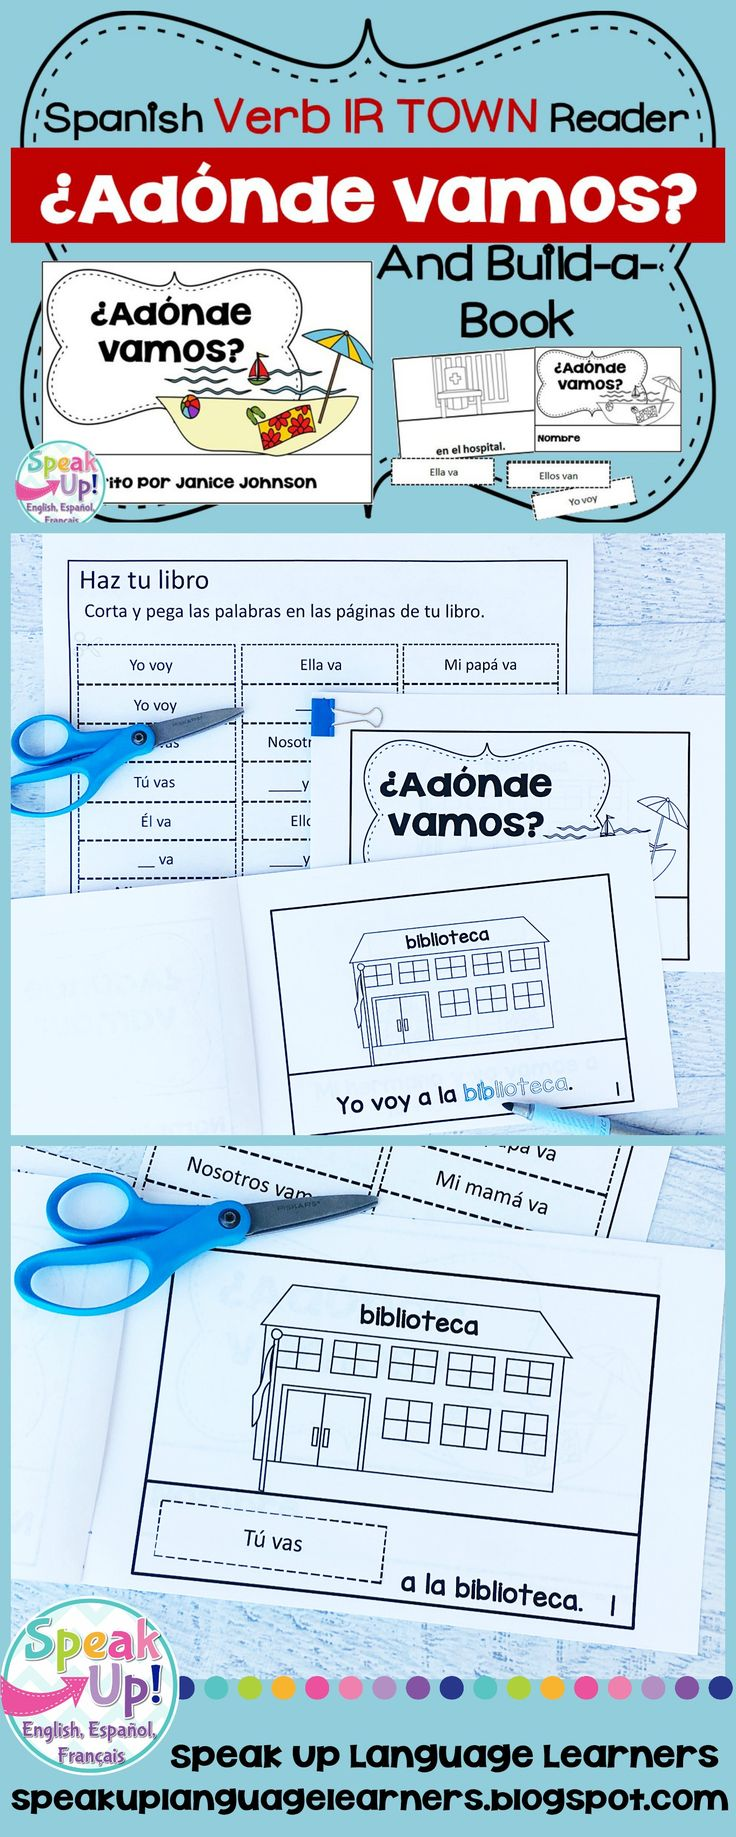 14 best Spanish Resources images on Pinterest | French lessons, At ...